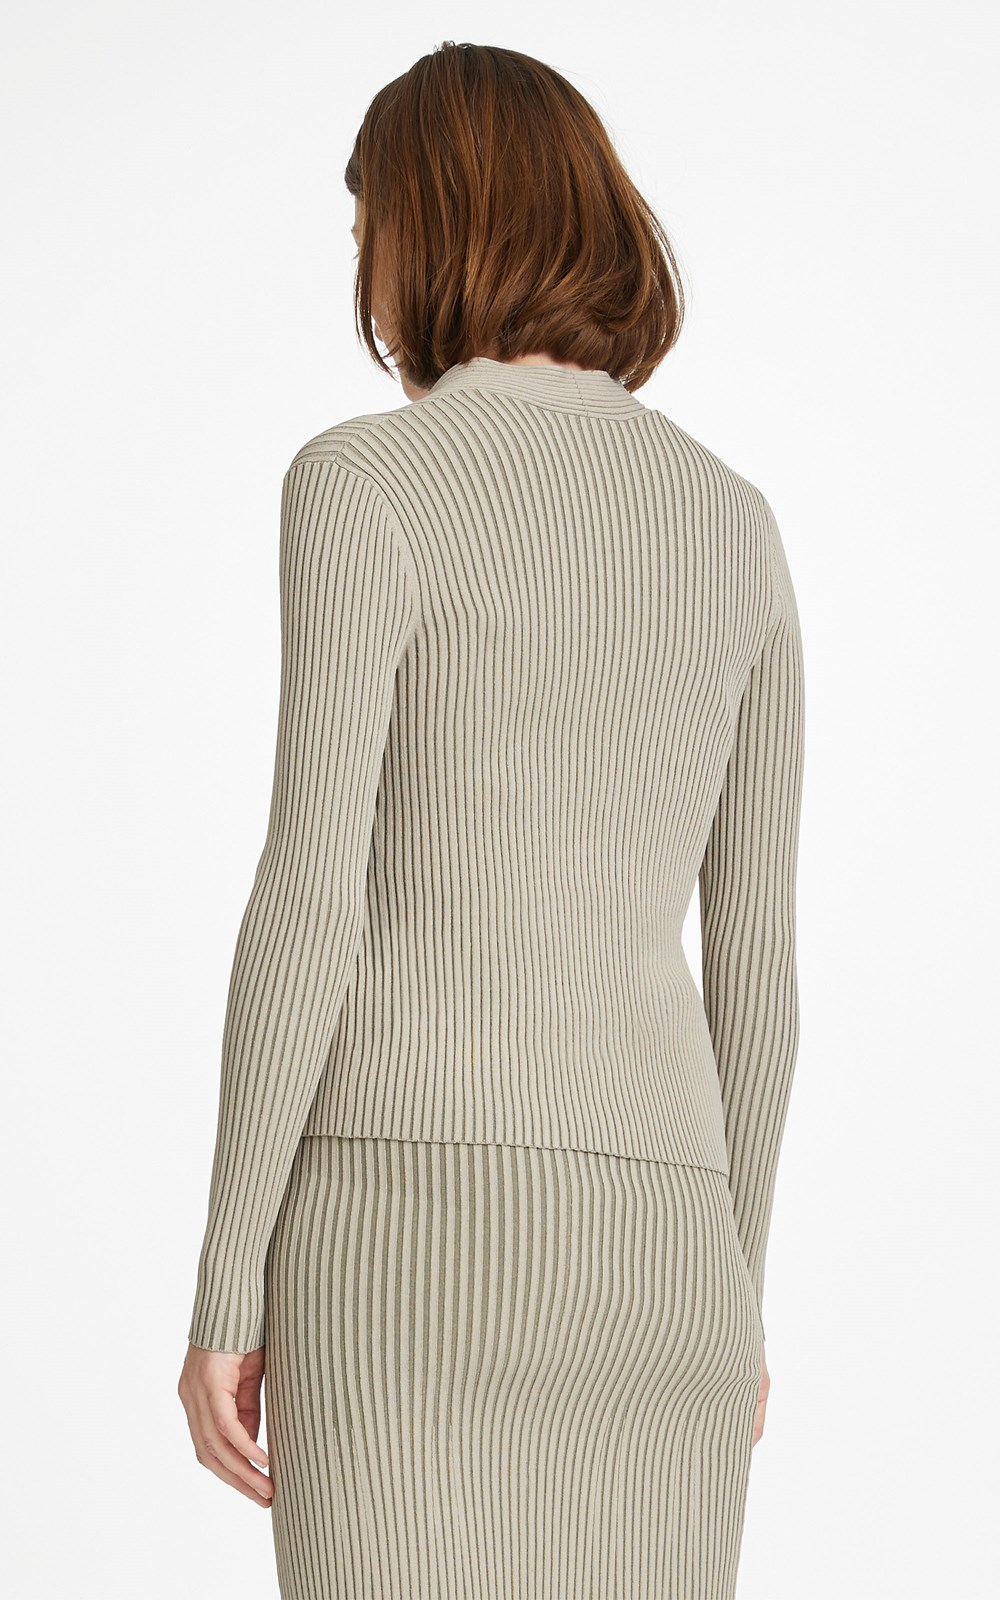 Knitwear | CABLE TWIST LS TOP